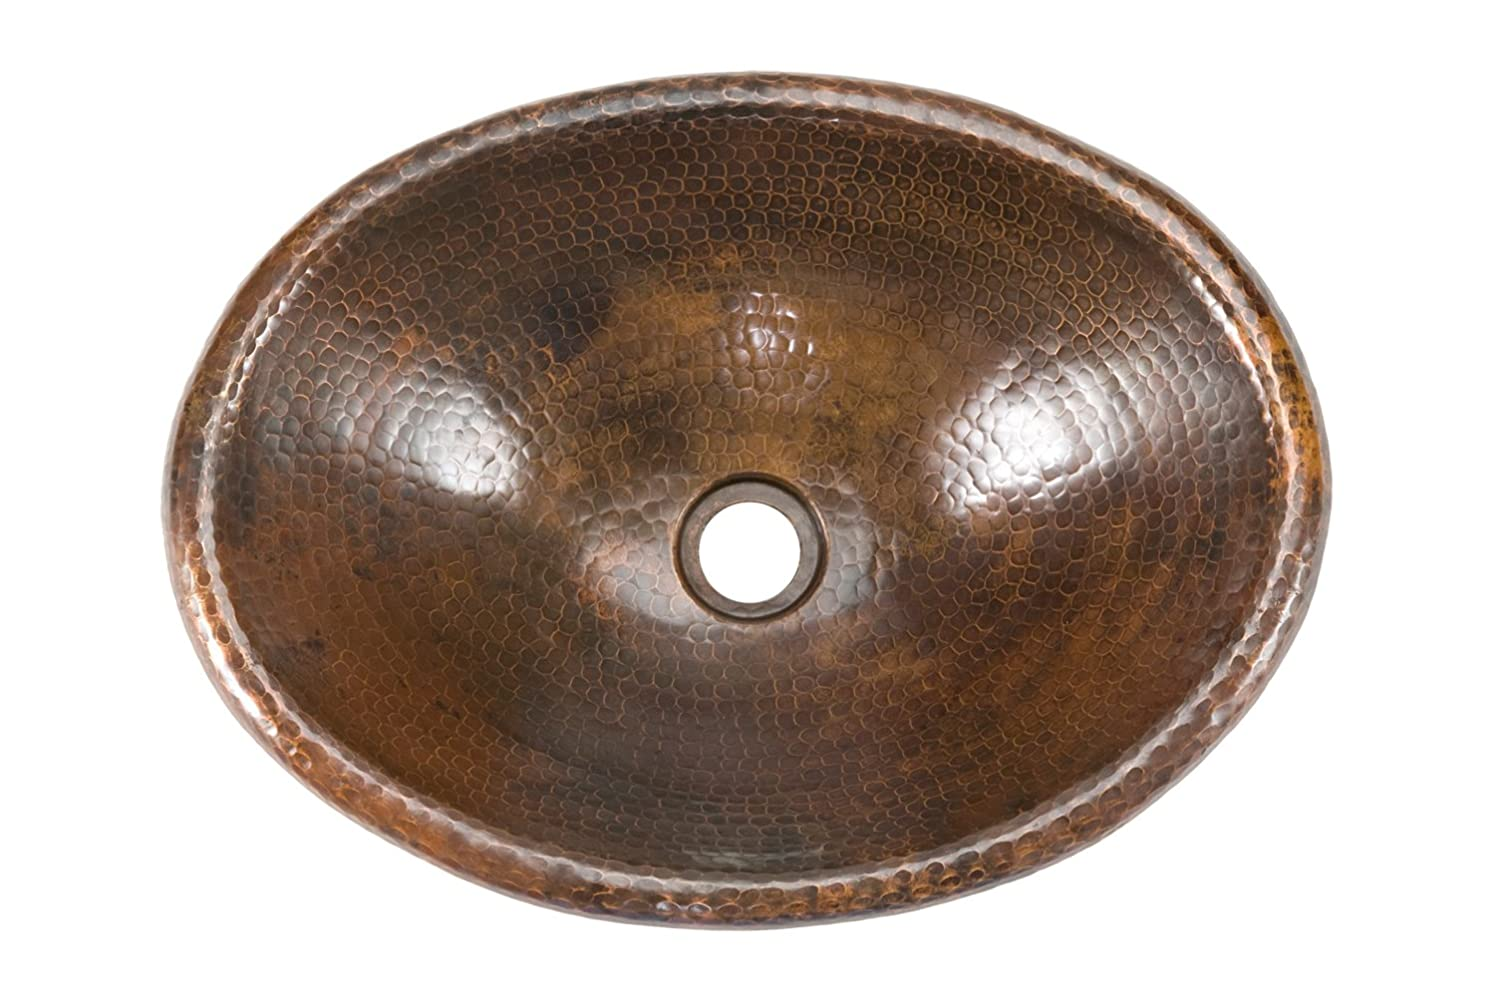 premier copper products lo17rdb small oval self rimming hammered copper sink oil rubbed bronze bathroom sinks amazoncom